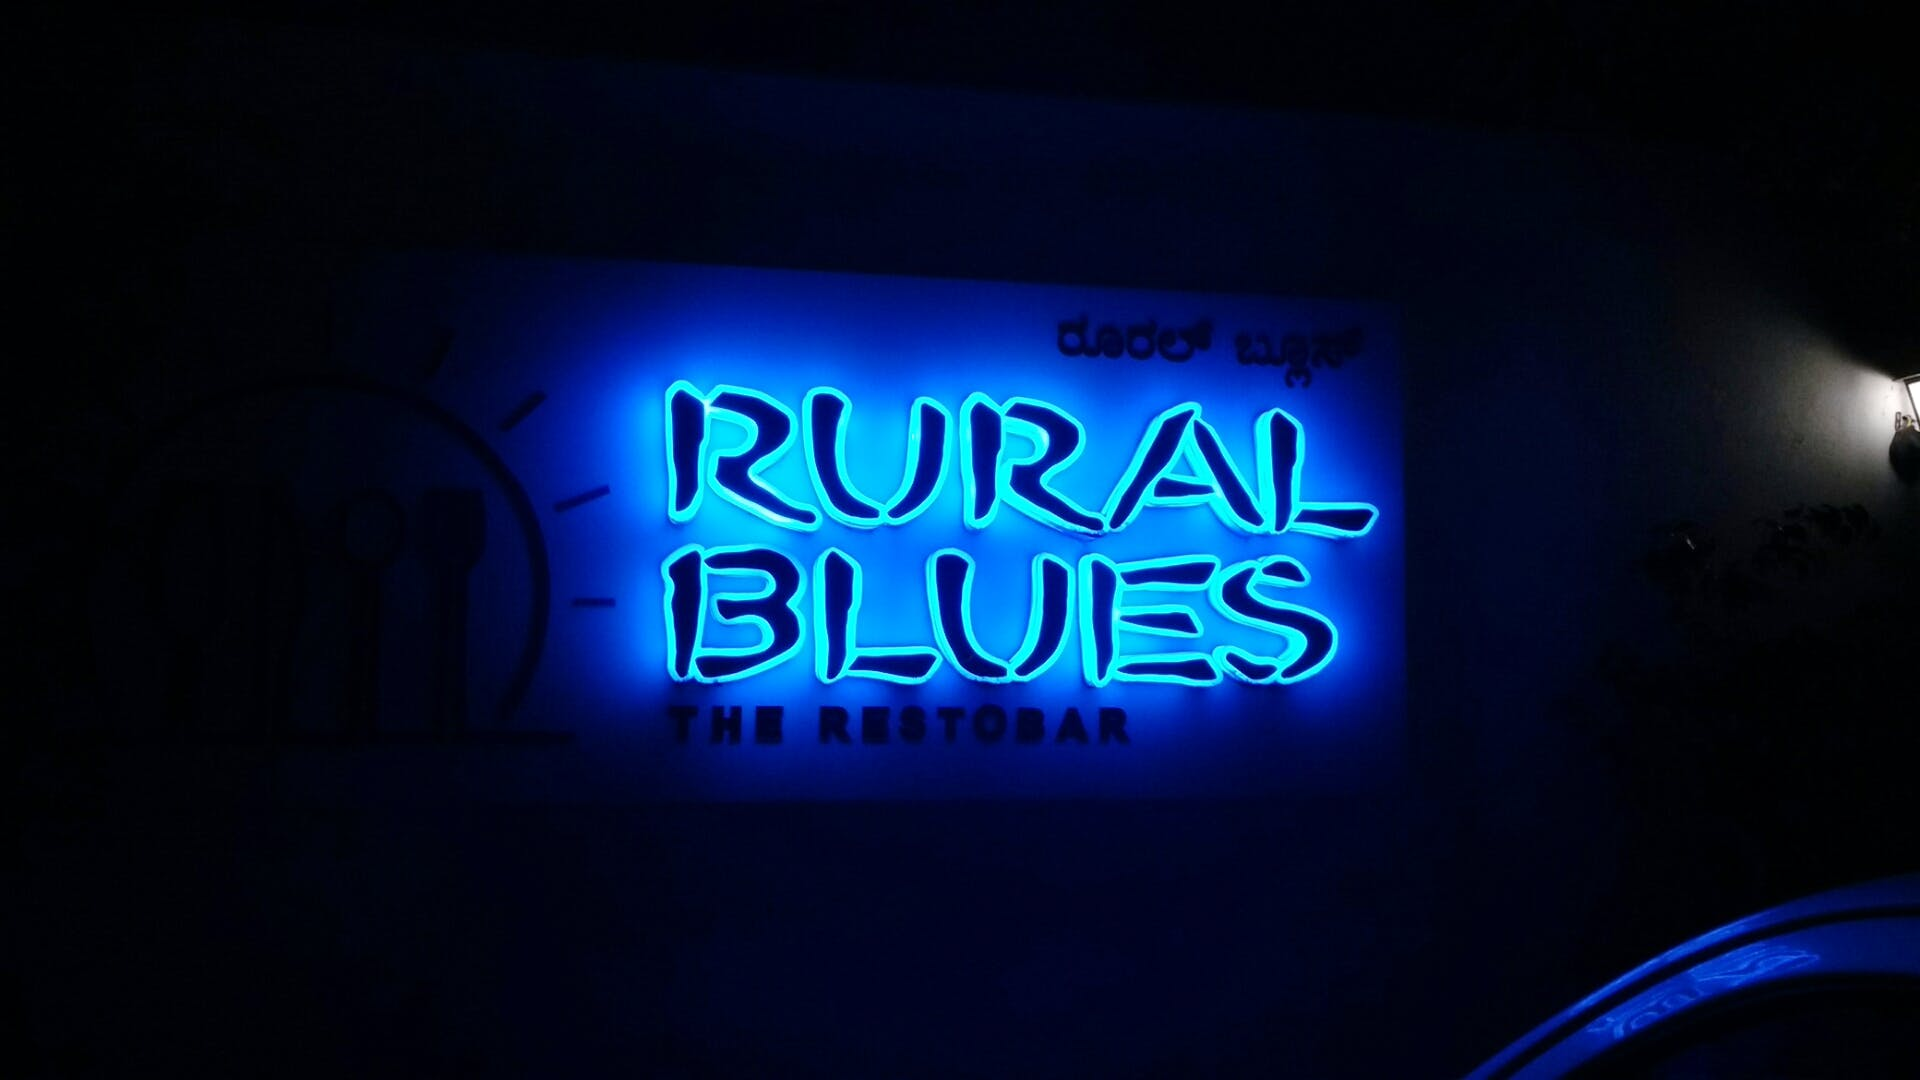 image - Rural Blues